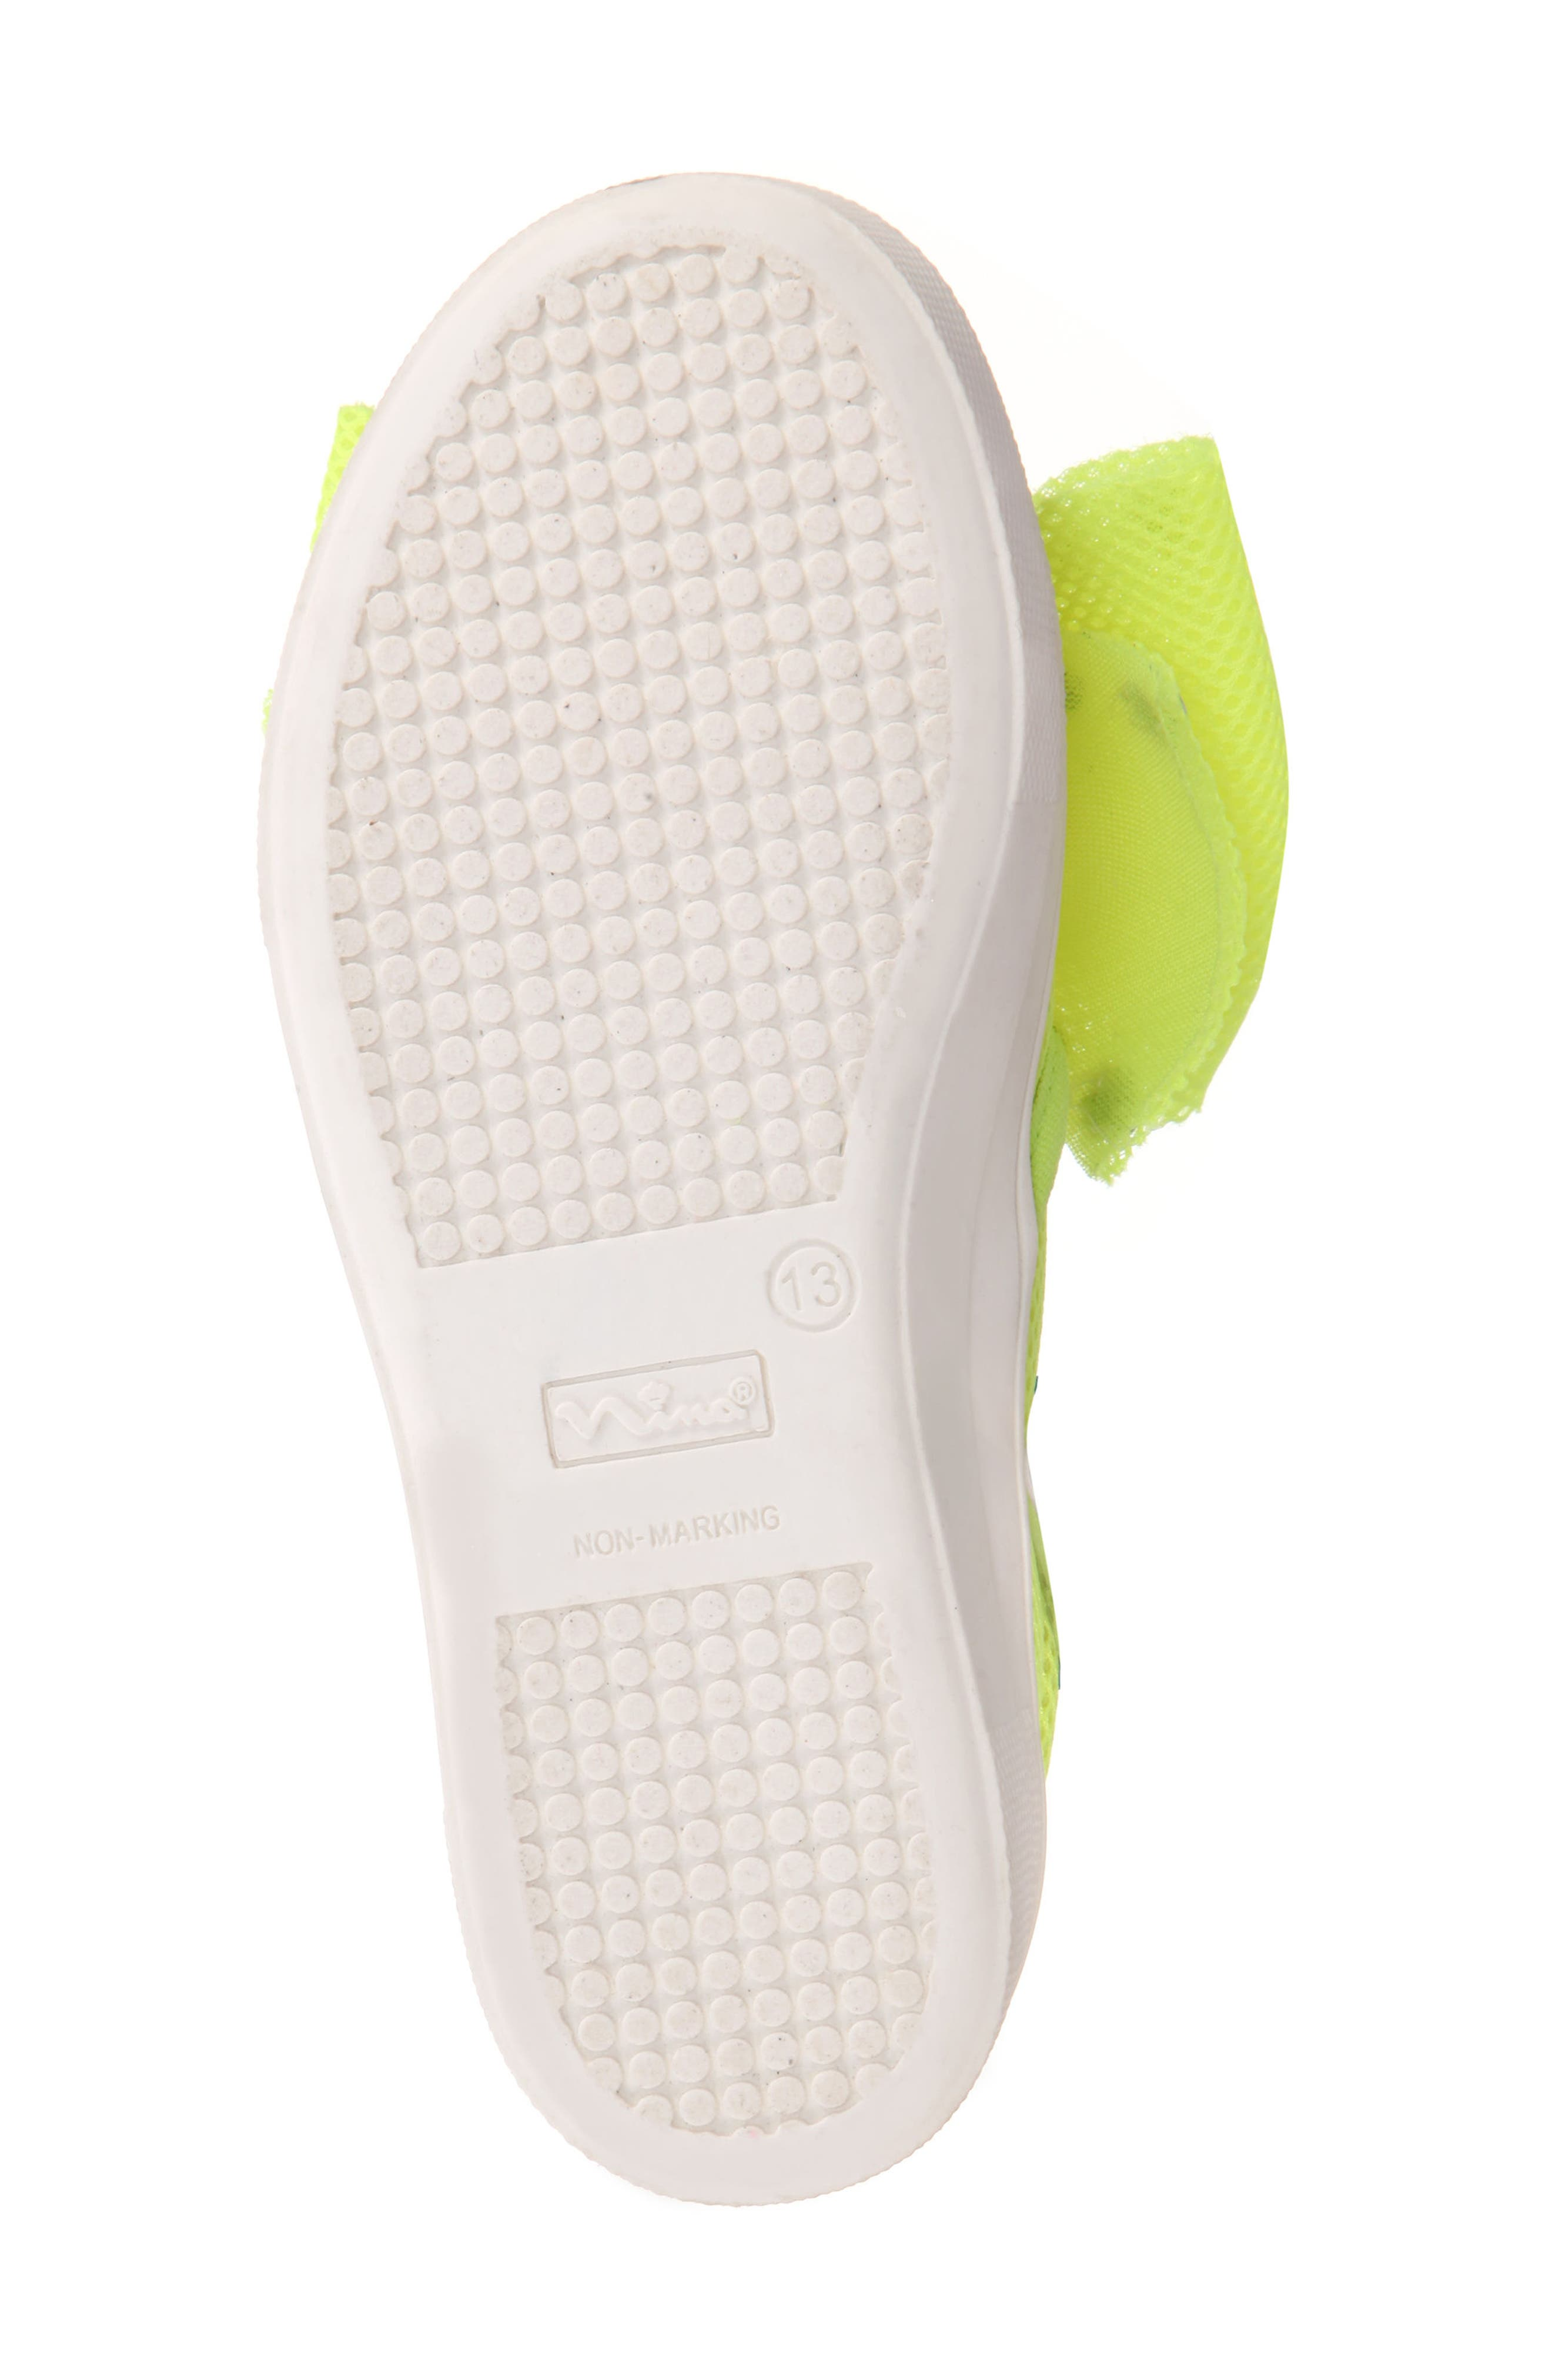 Mary Bow Slip-On Sneaker,                             Alternate thumbnail 6, color,                             Neon Yellow Mesh